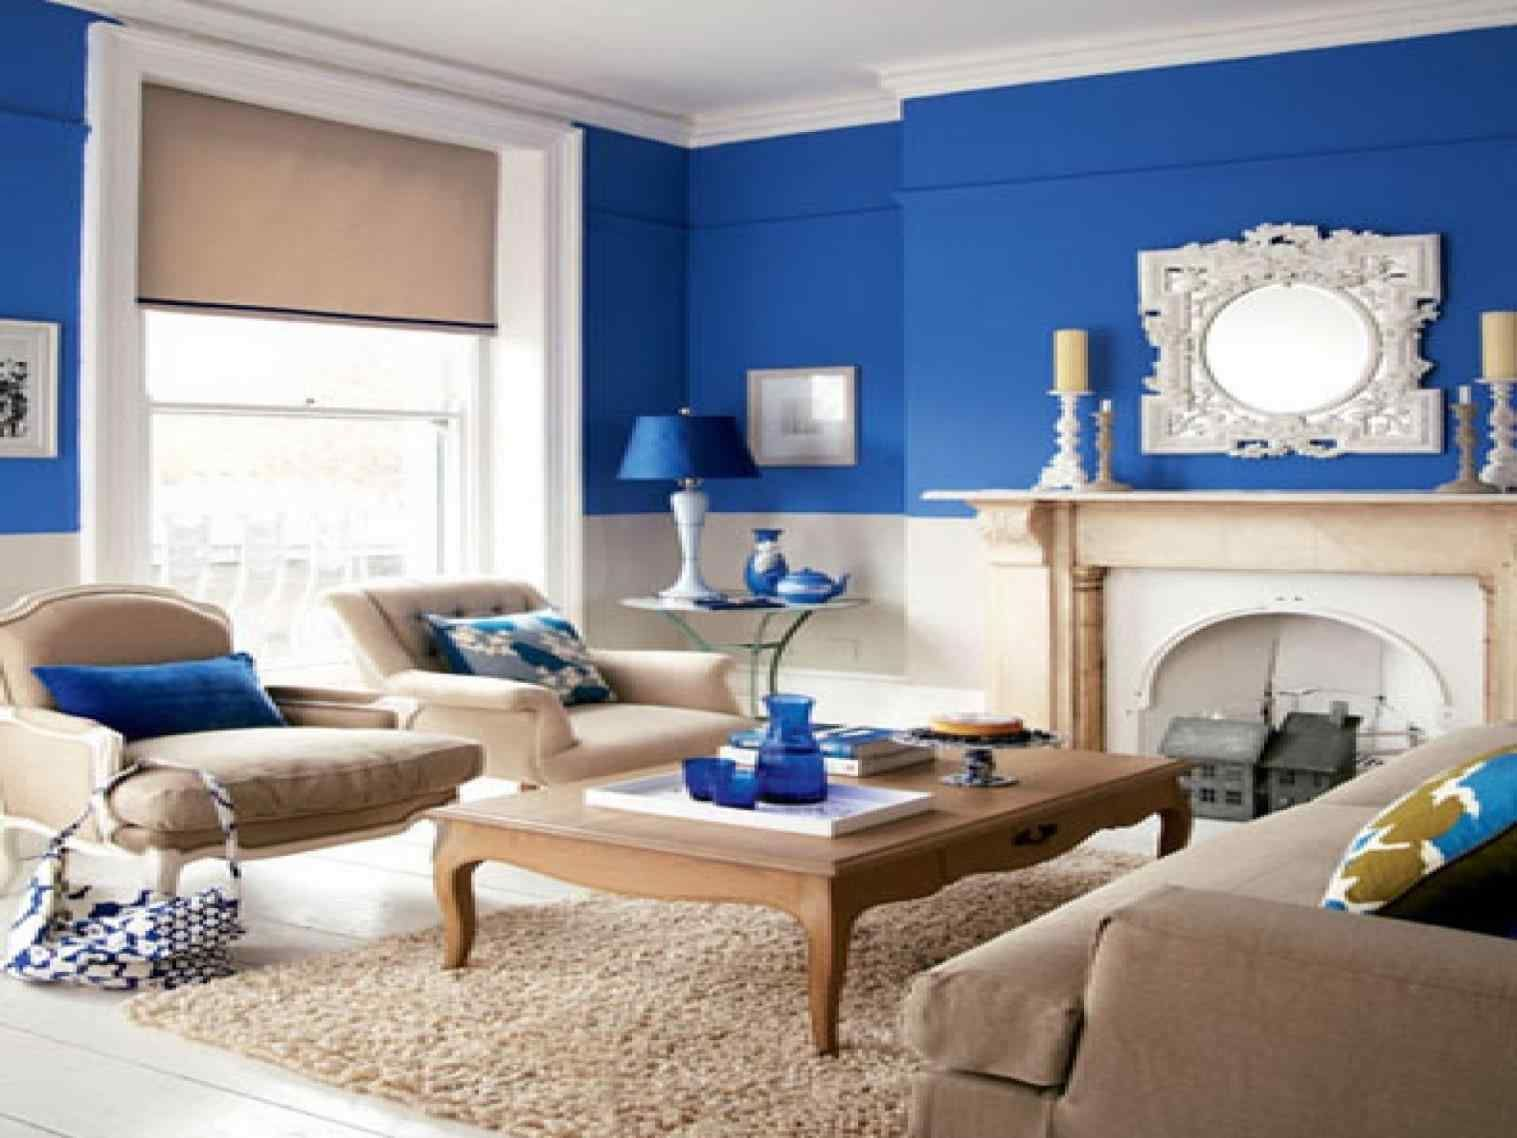 14 Incredible Navy Blue And Cream Living Room Ideas Breakpr Brown Living Room Brown Living Room Decor Brown And Blue Living Room